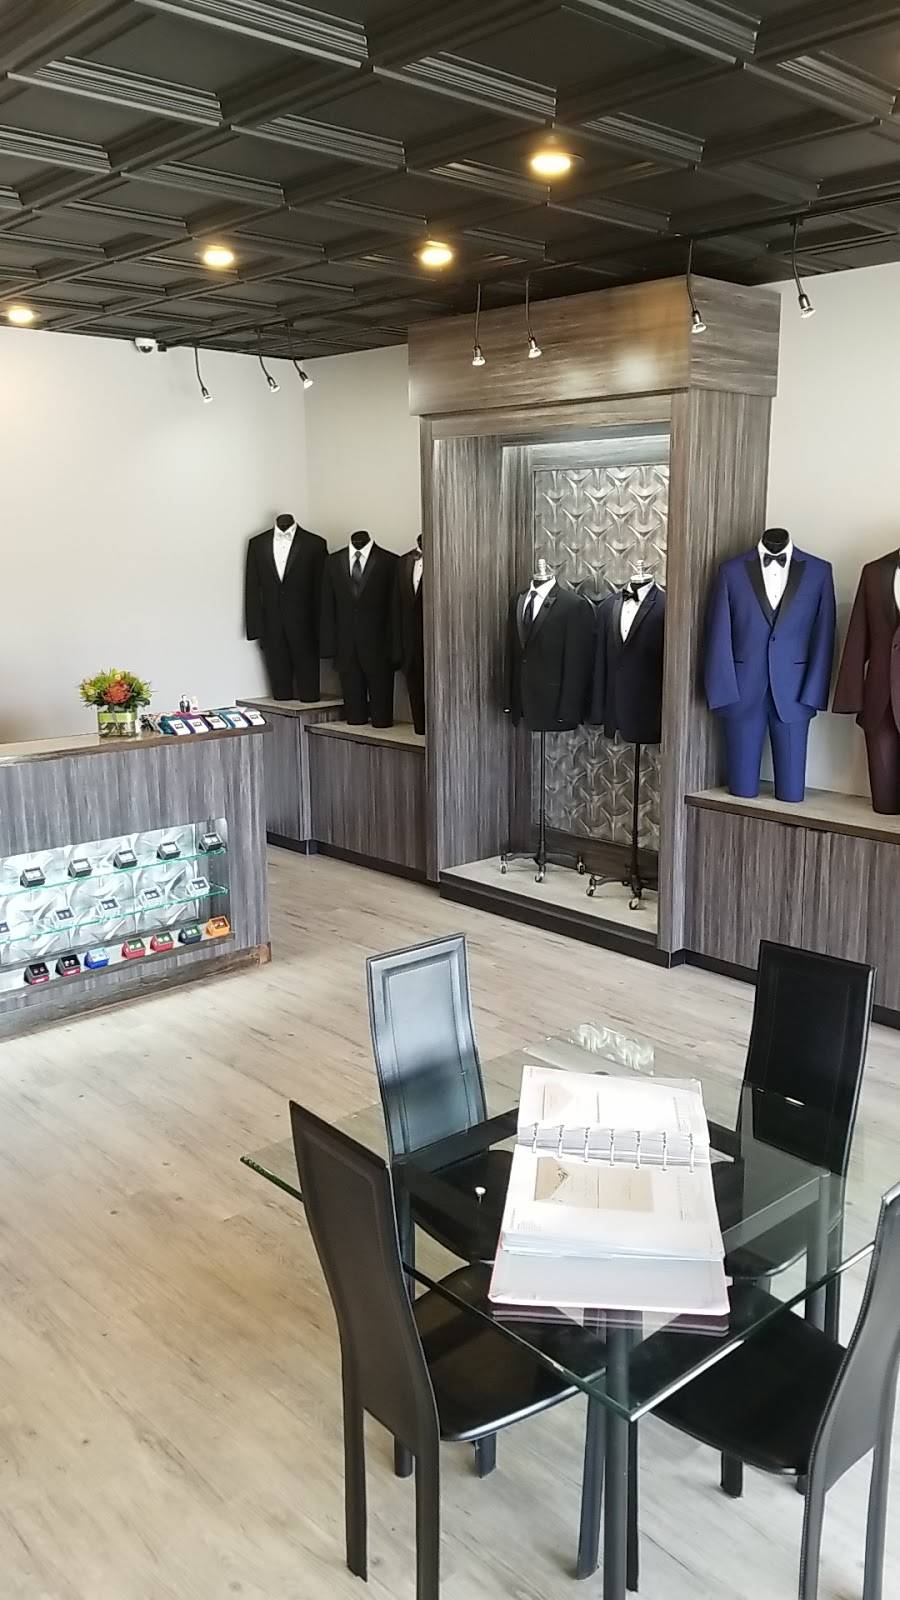 Formally Modern Tuxedo - clothing store  | Photo 8 of 9 | Address: 3933 E 82nd St, Indianapolis, IN 46240, USA | Phone: (317) 579-4889